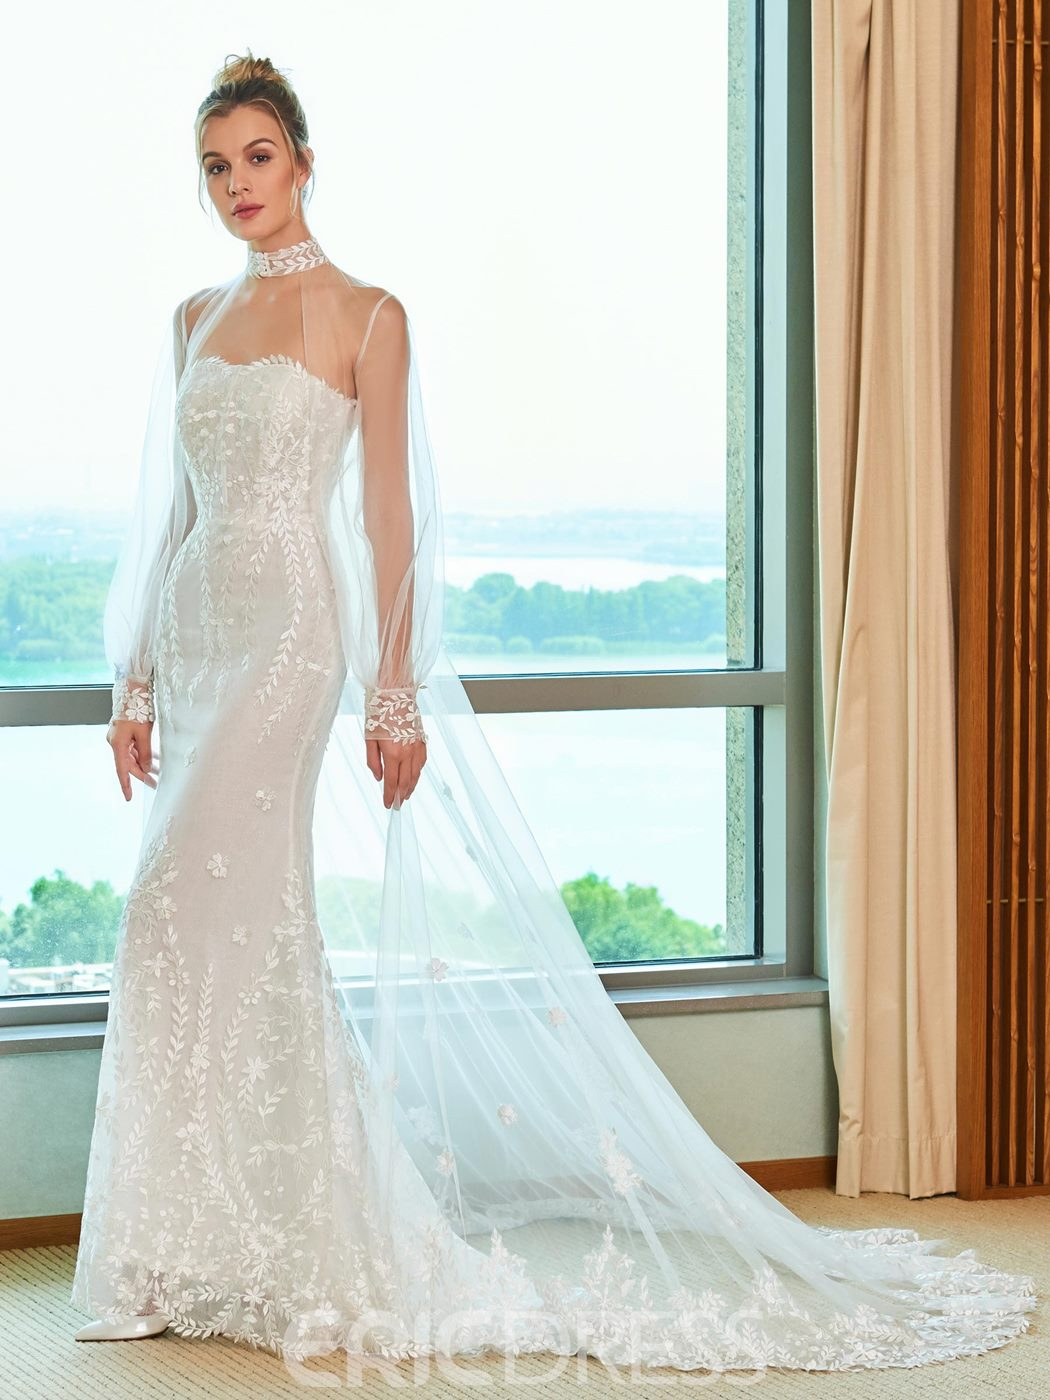 Mermaid Strapless Wedding Dress